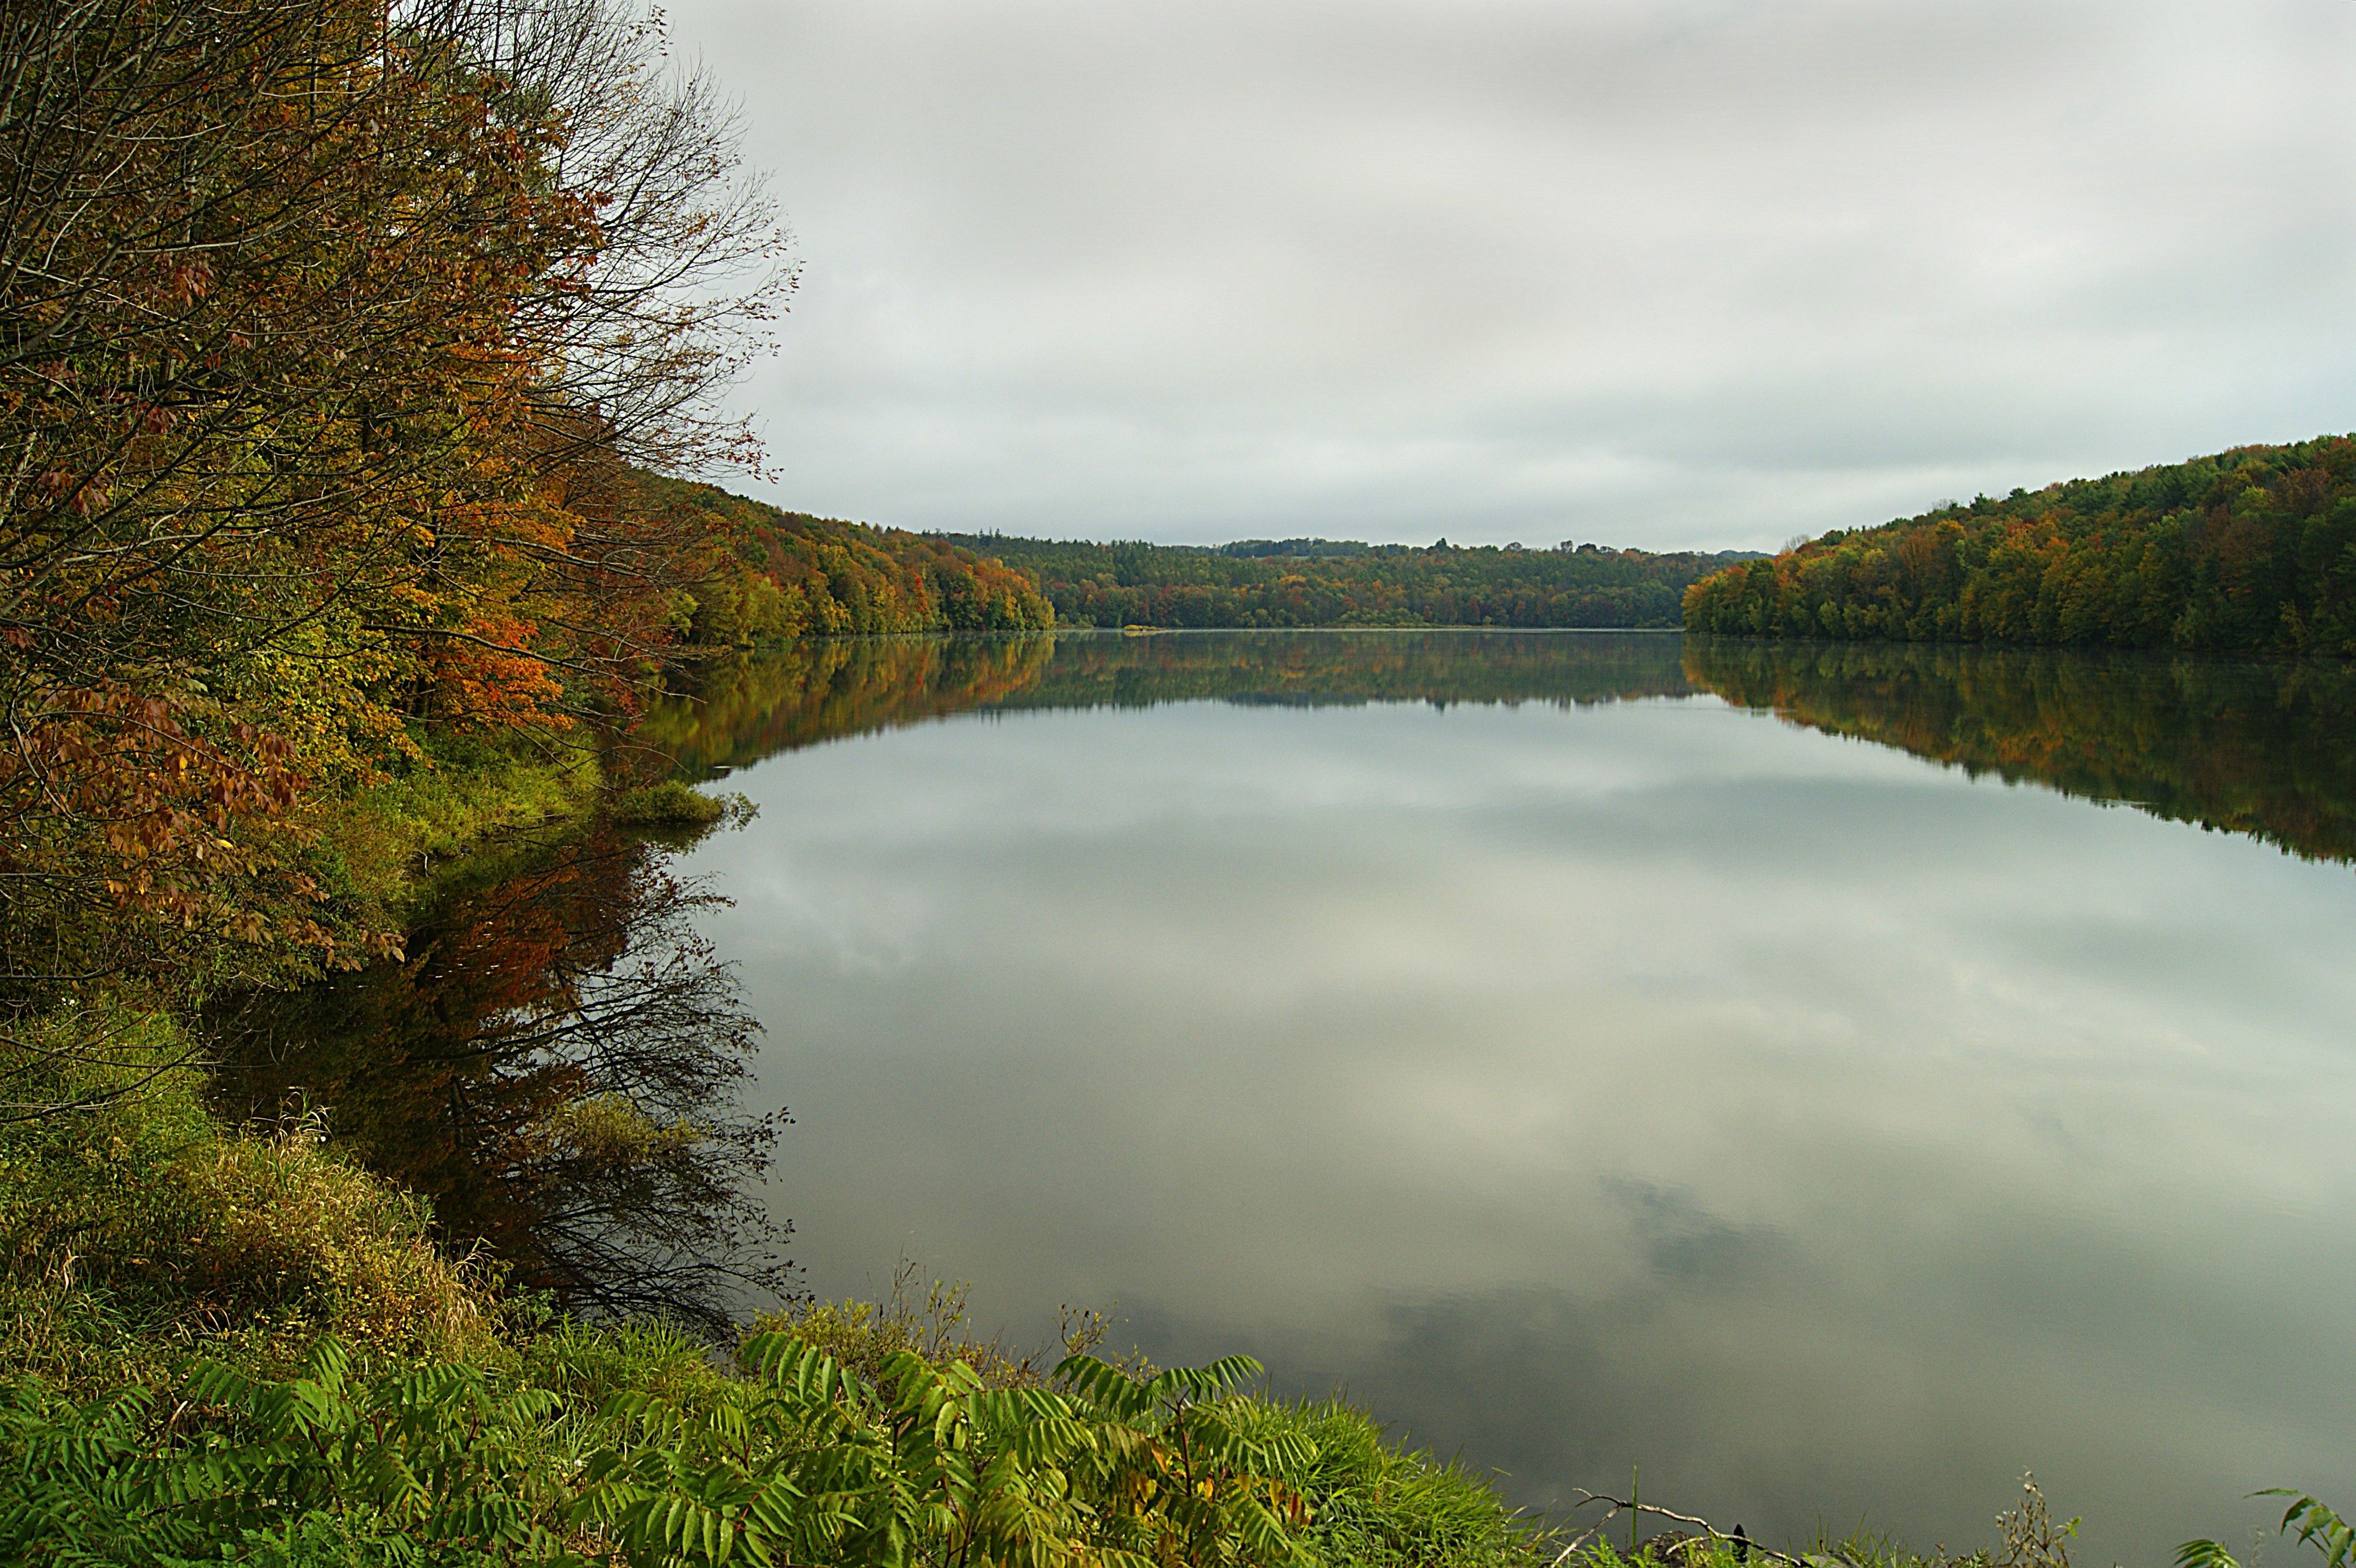 Trees changing colors in autumn are reflected in the river.